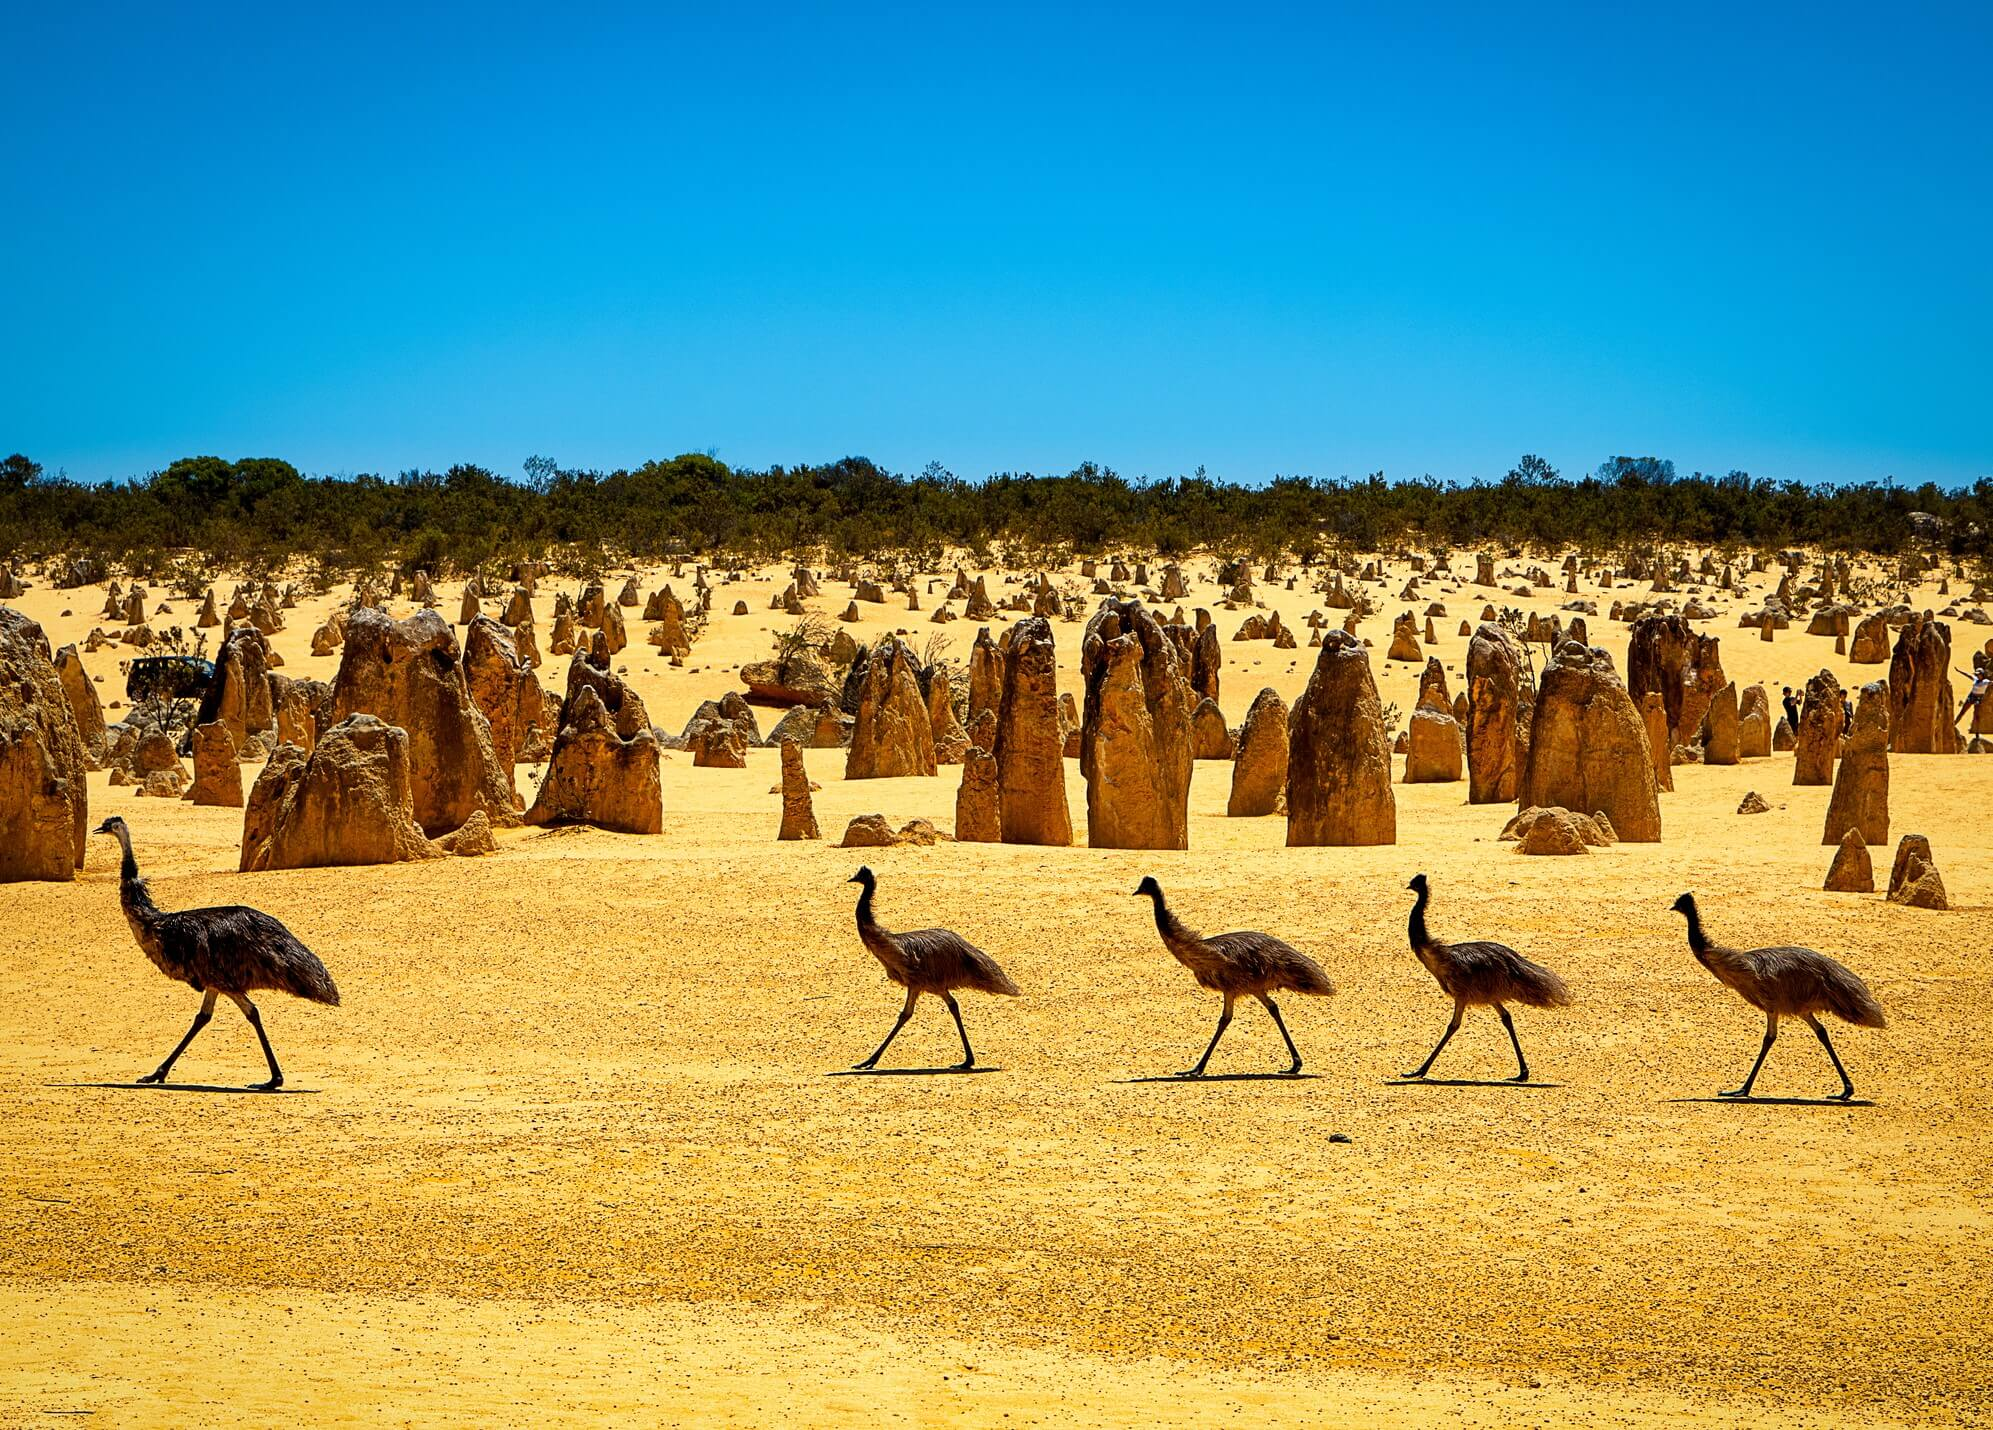 Flock of emus on an adventure in Australia at Nambung National Park